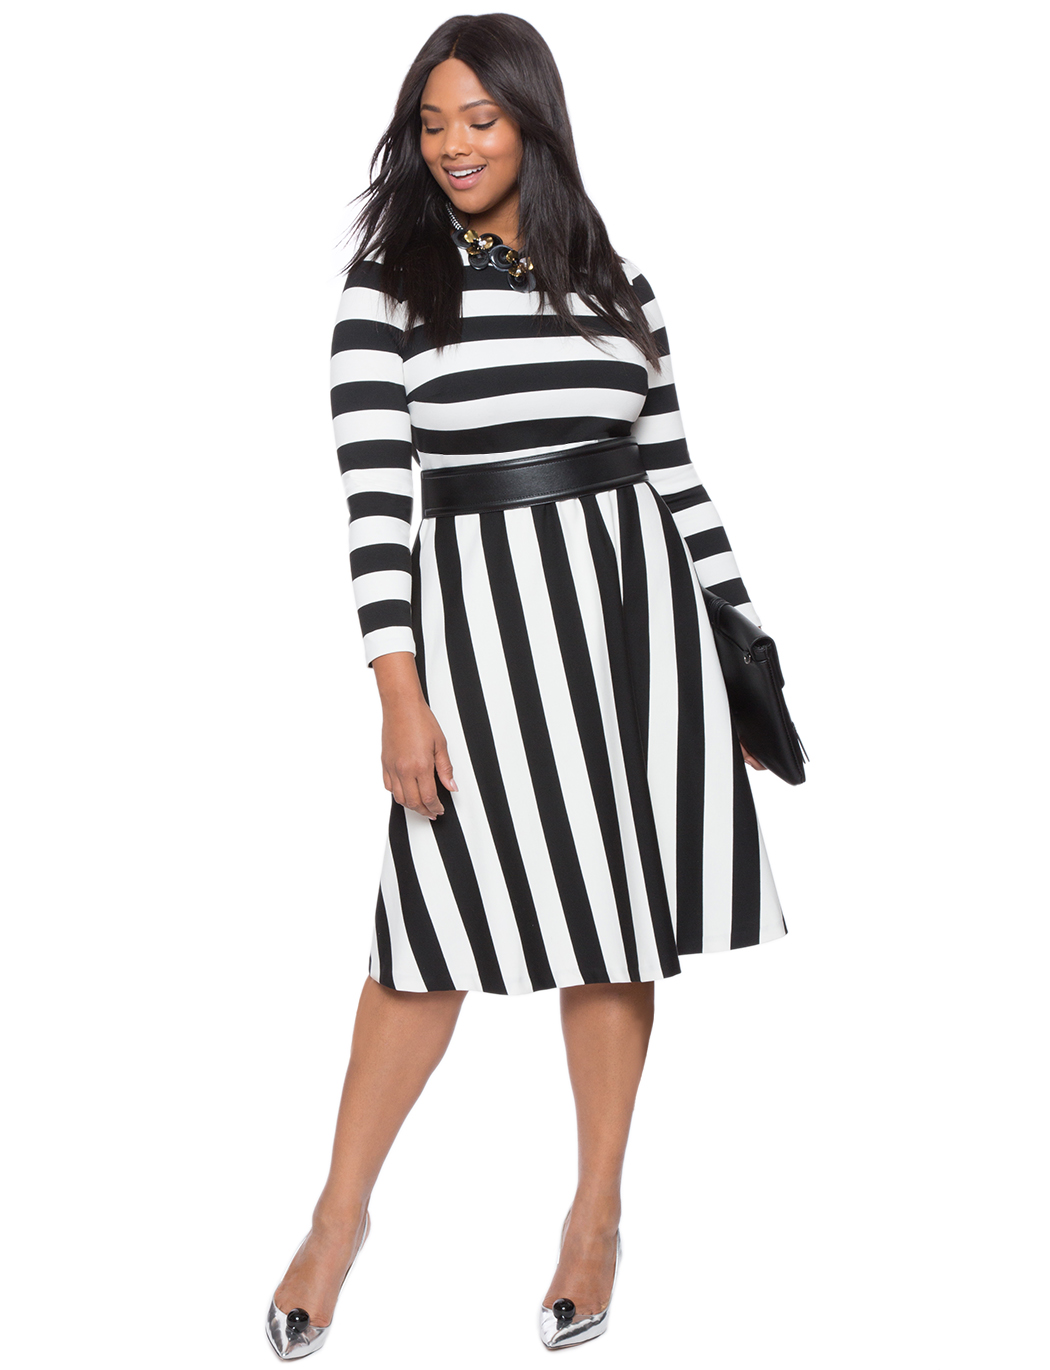 Opposing Stripes Fit and Flare Dress